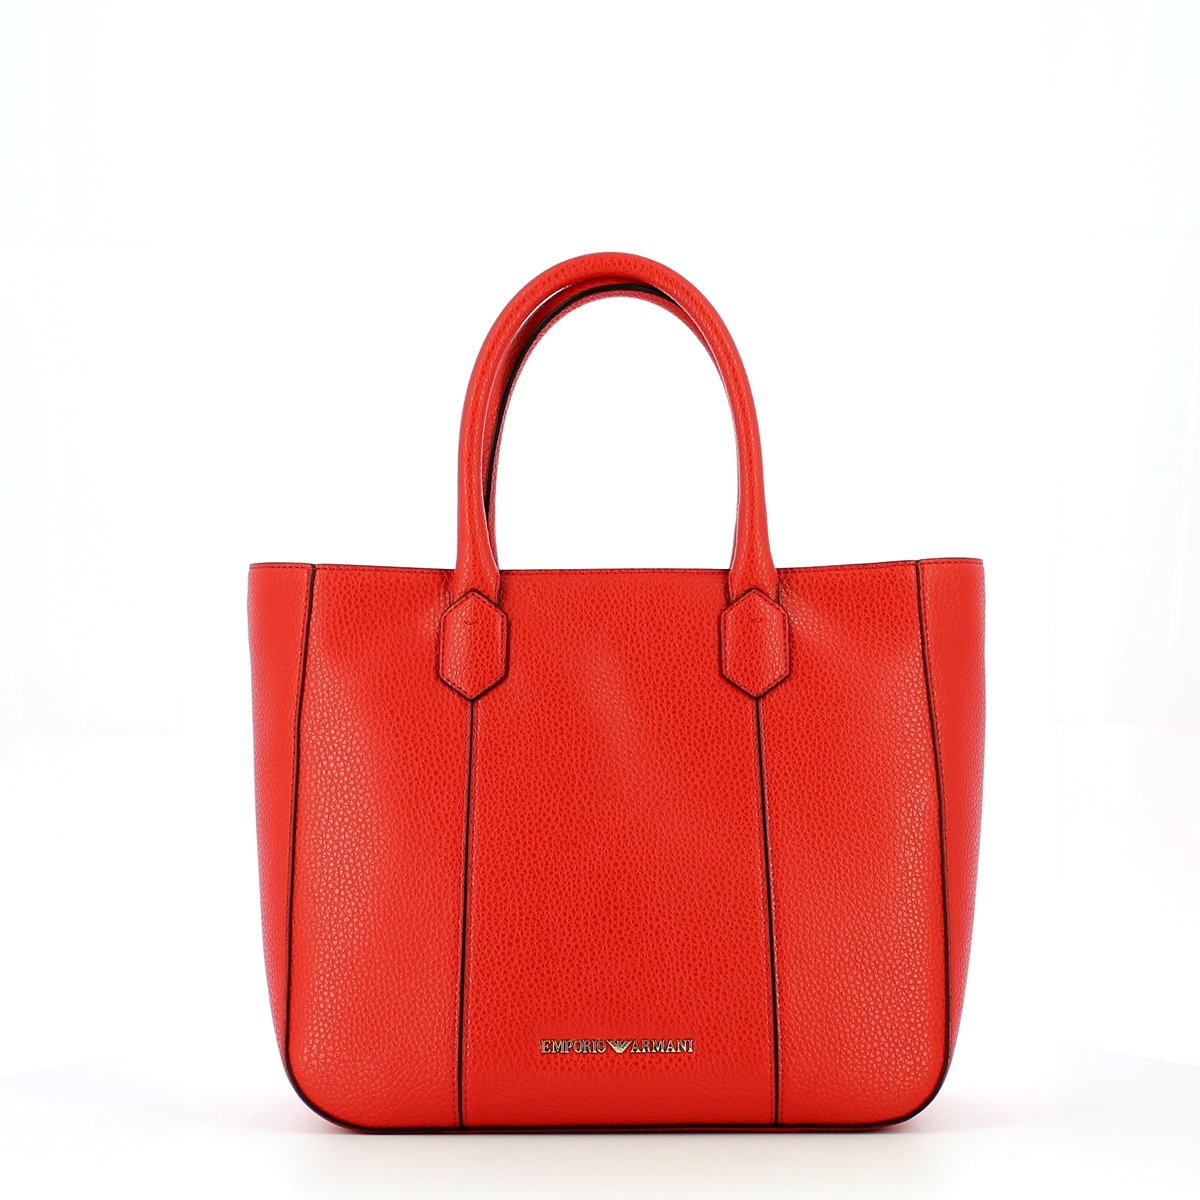 WOMEN'S TOTE BAG 2365270